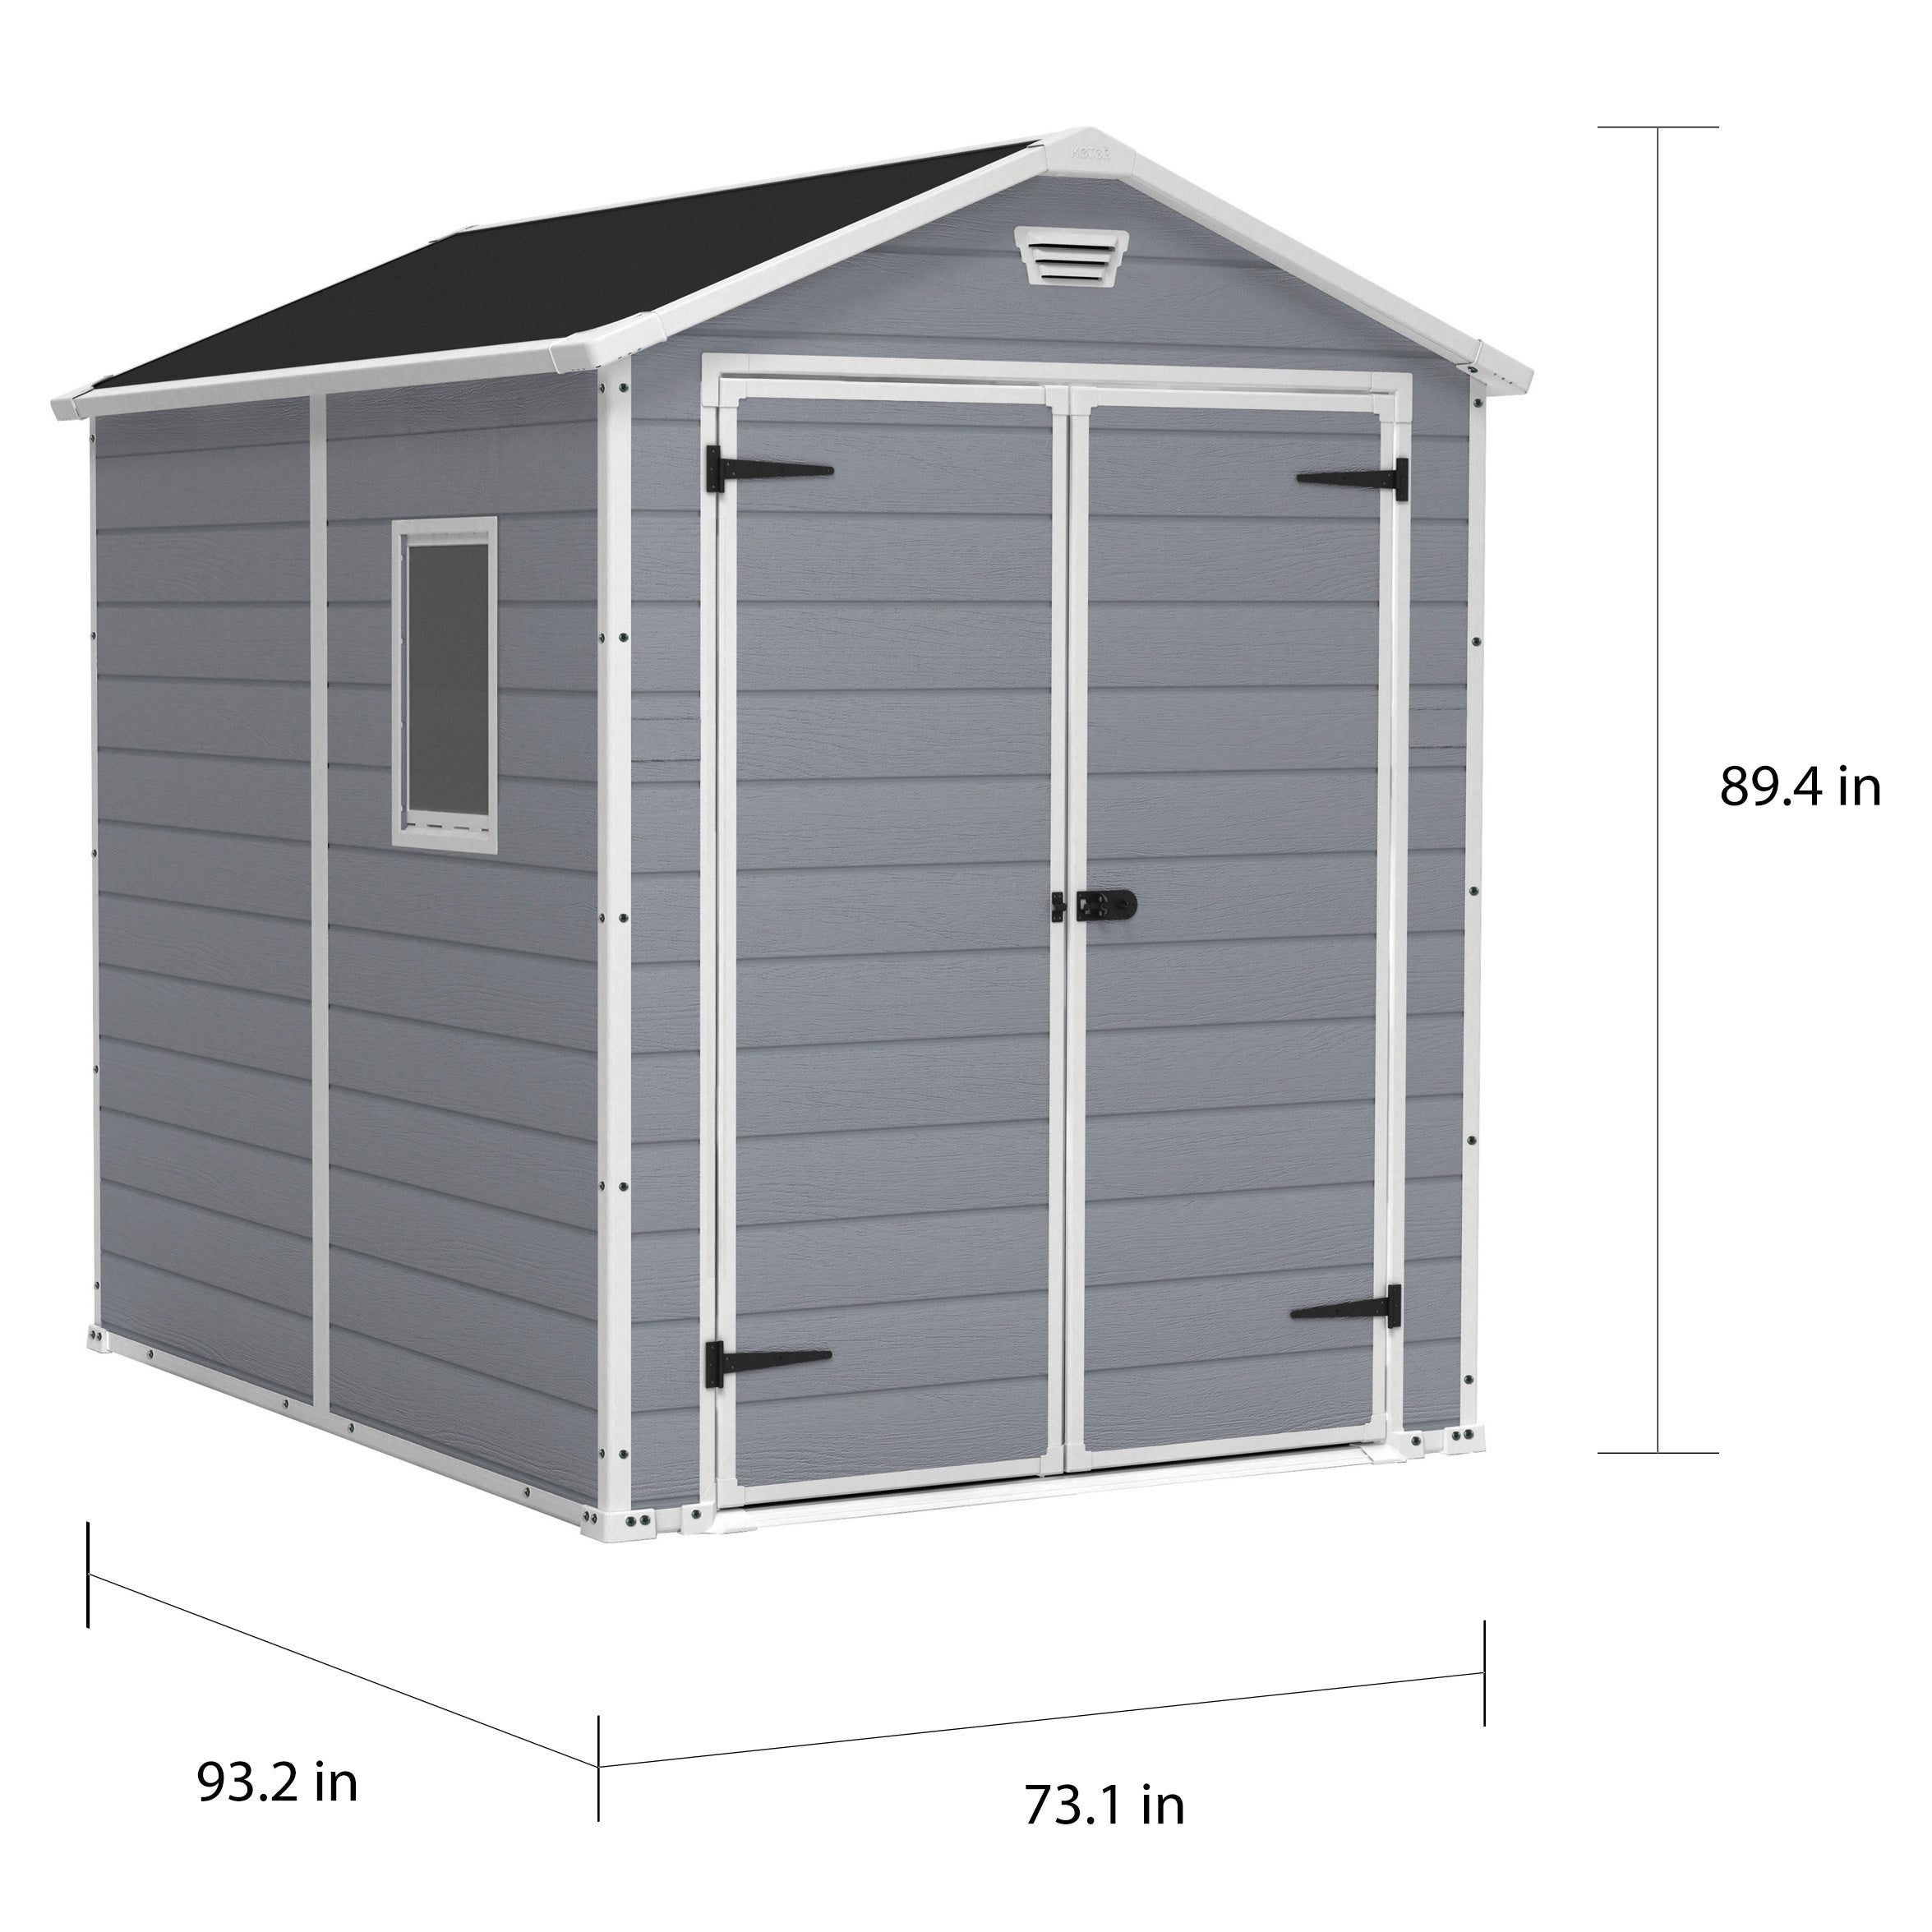 windows reduction click shed double floor sheds apex solid x to osb overlap enlarge product with storage flash doors